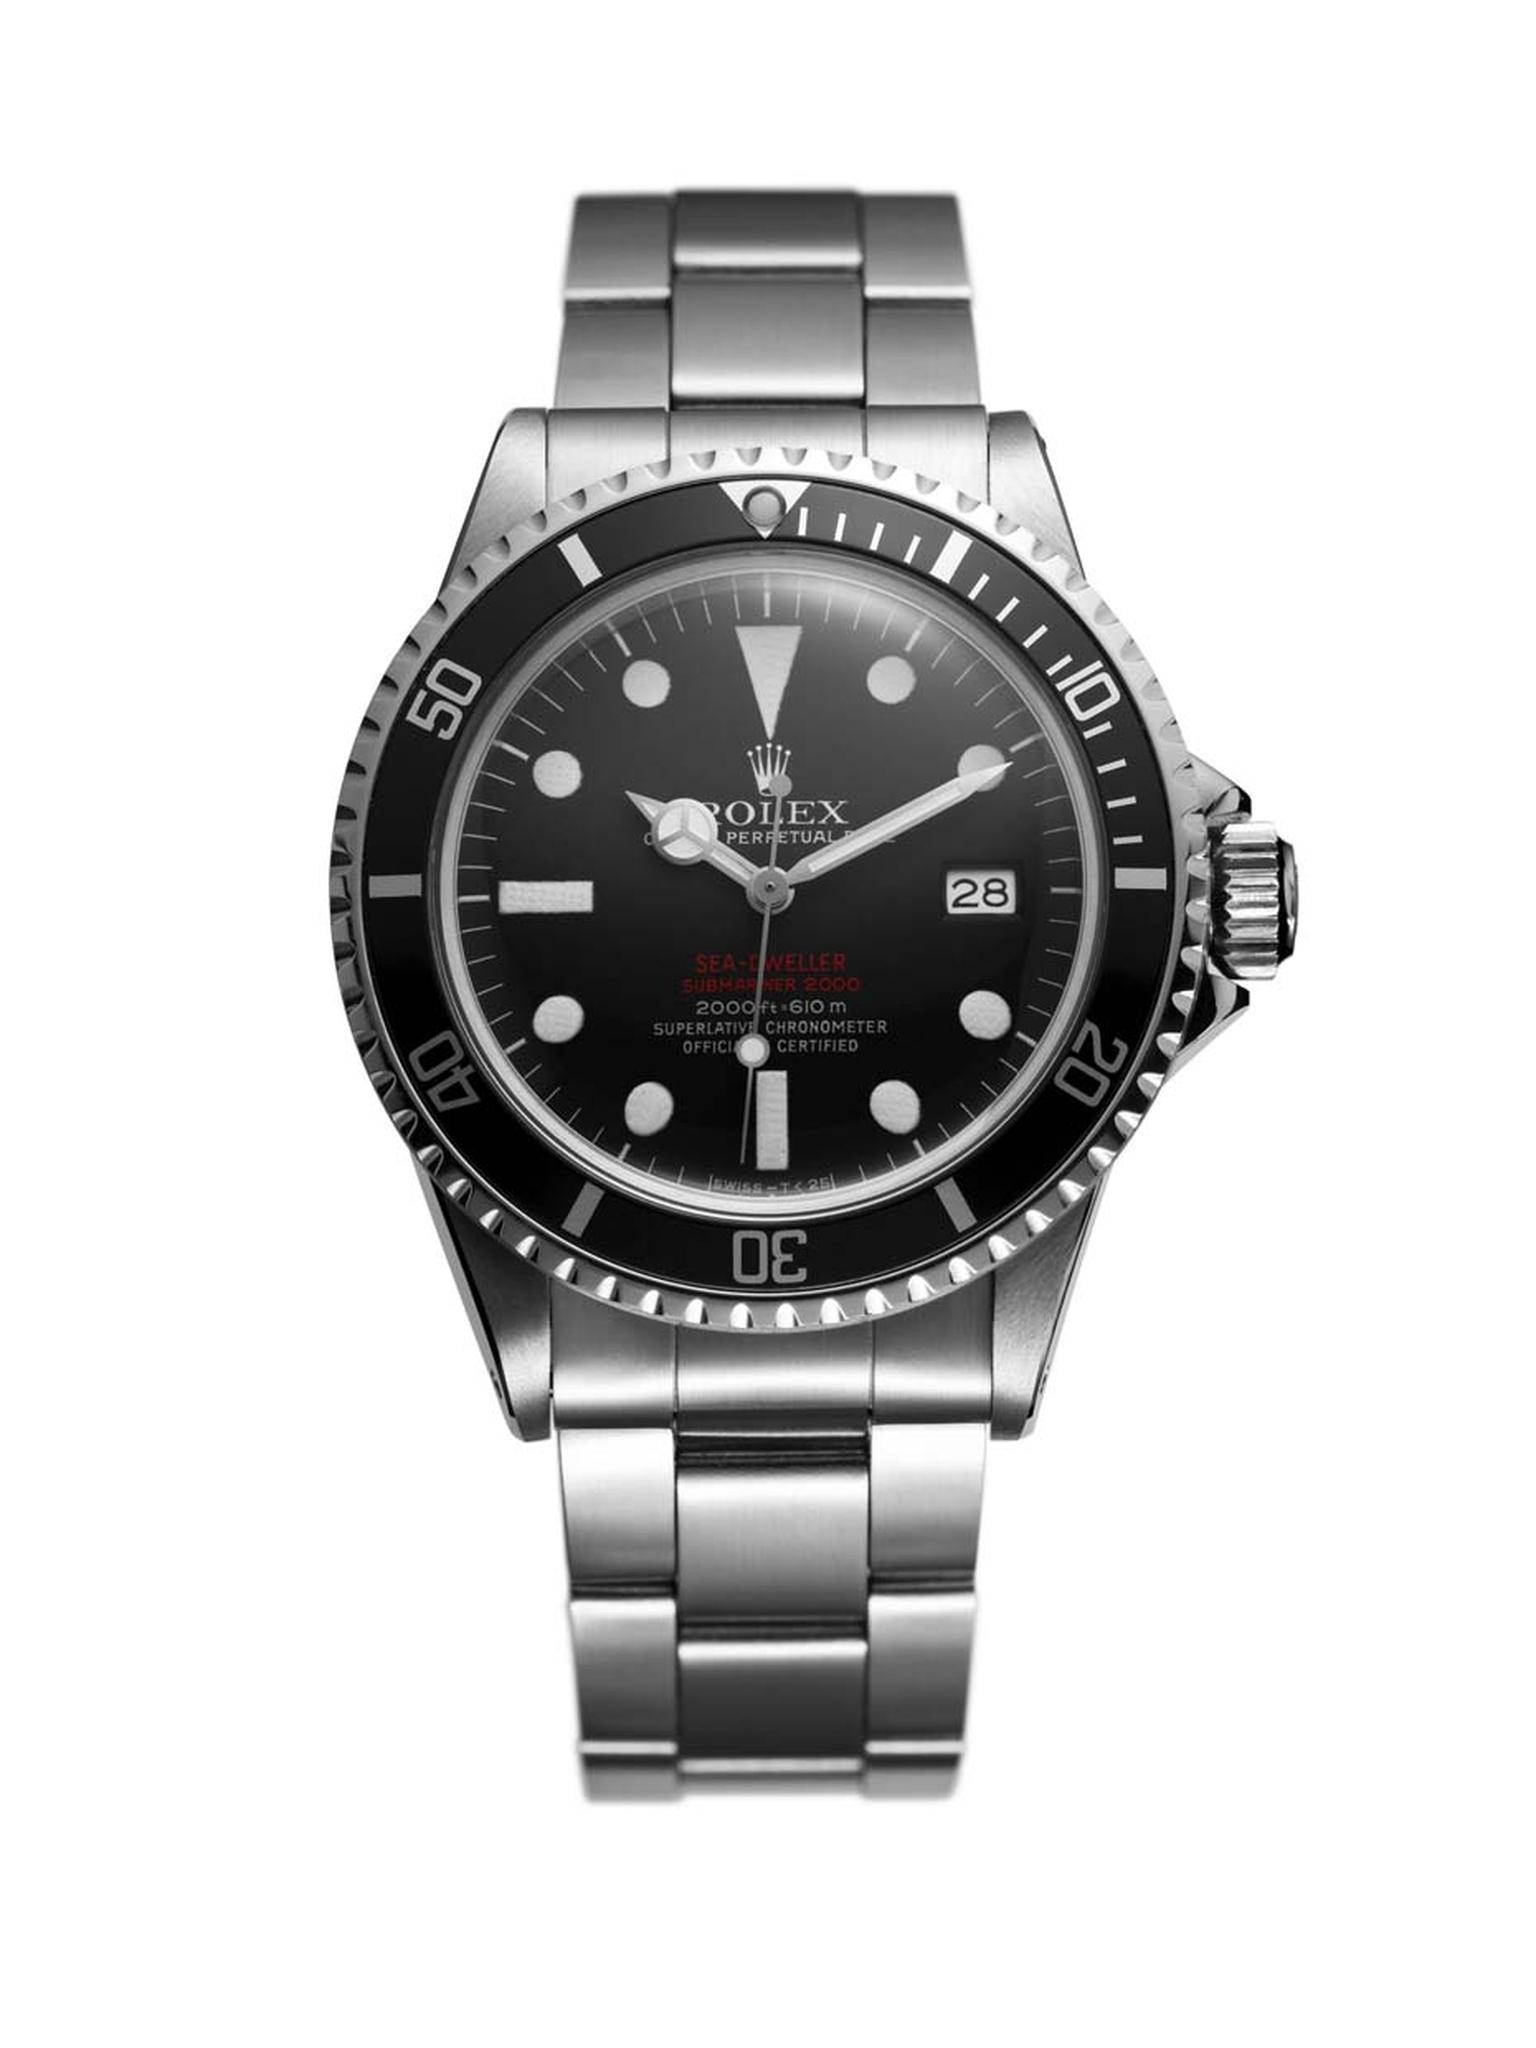 Rolex Sea-Dweller 1967 was a professional dive watch able to fathom depths of up to 600 metres.